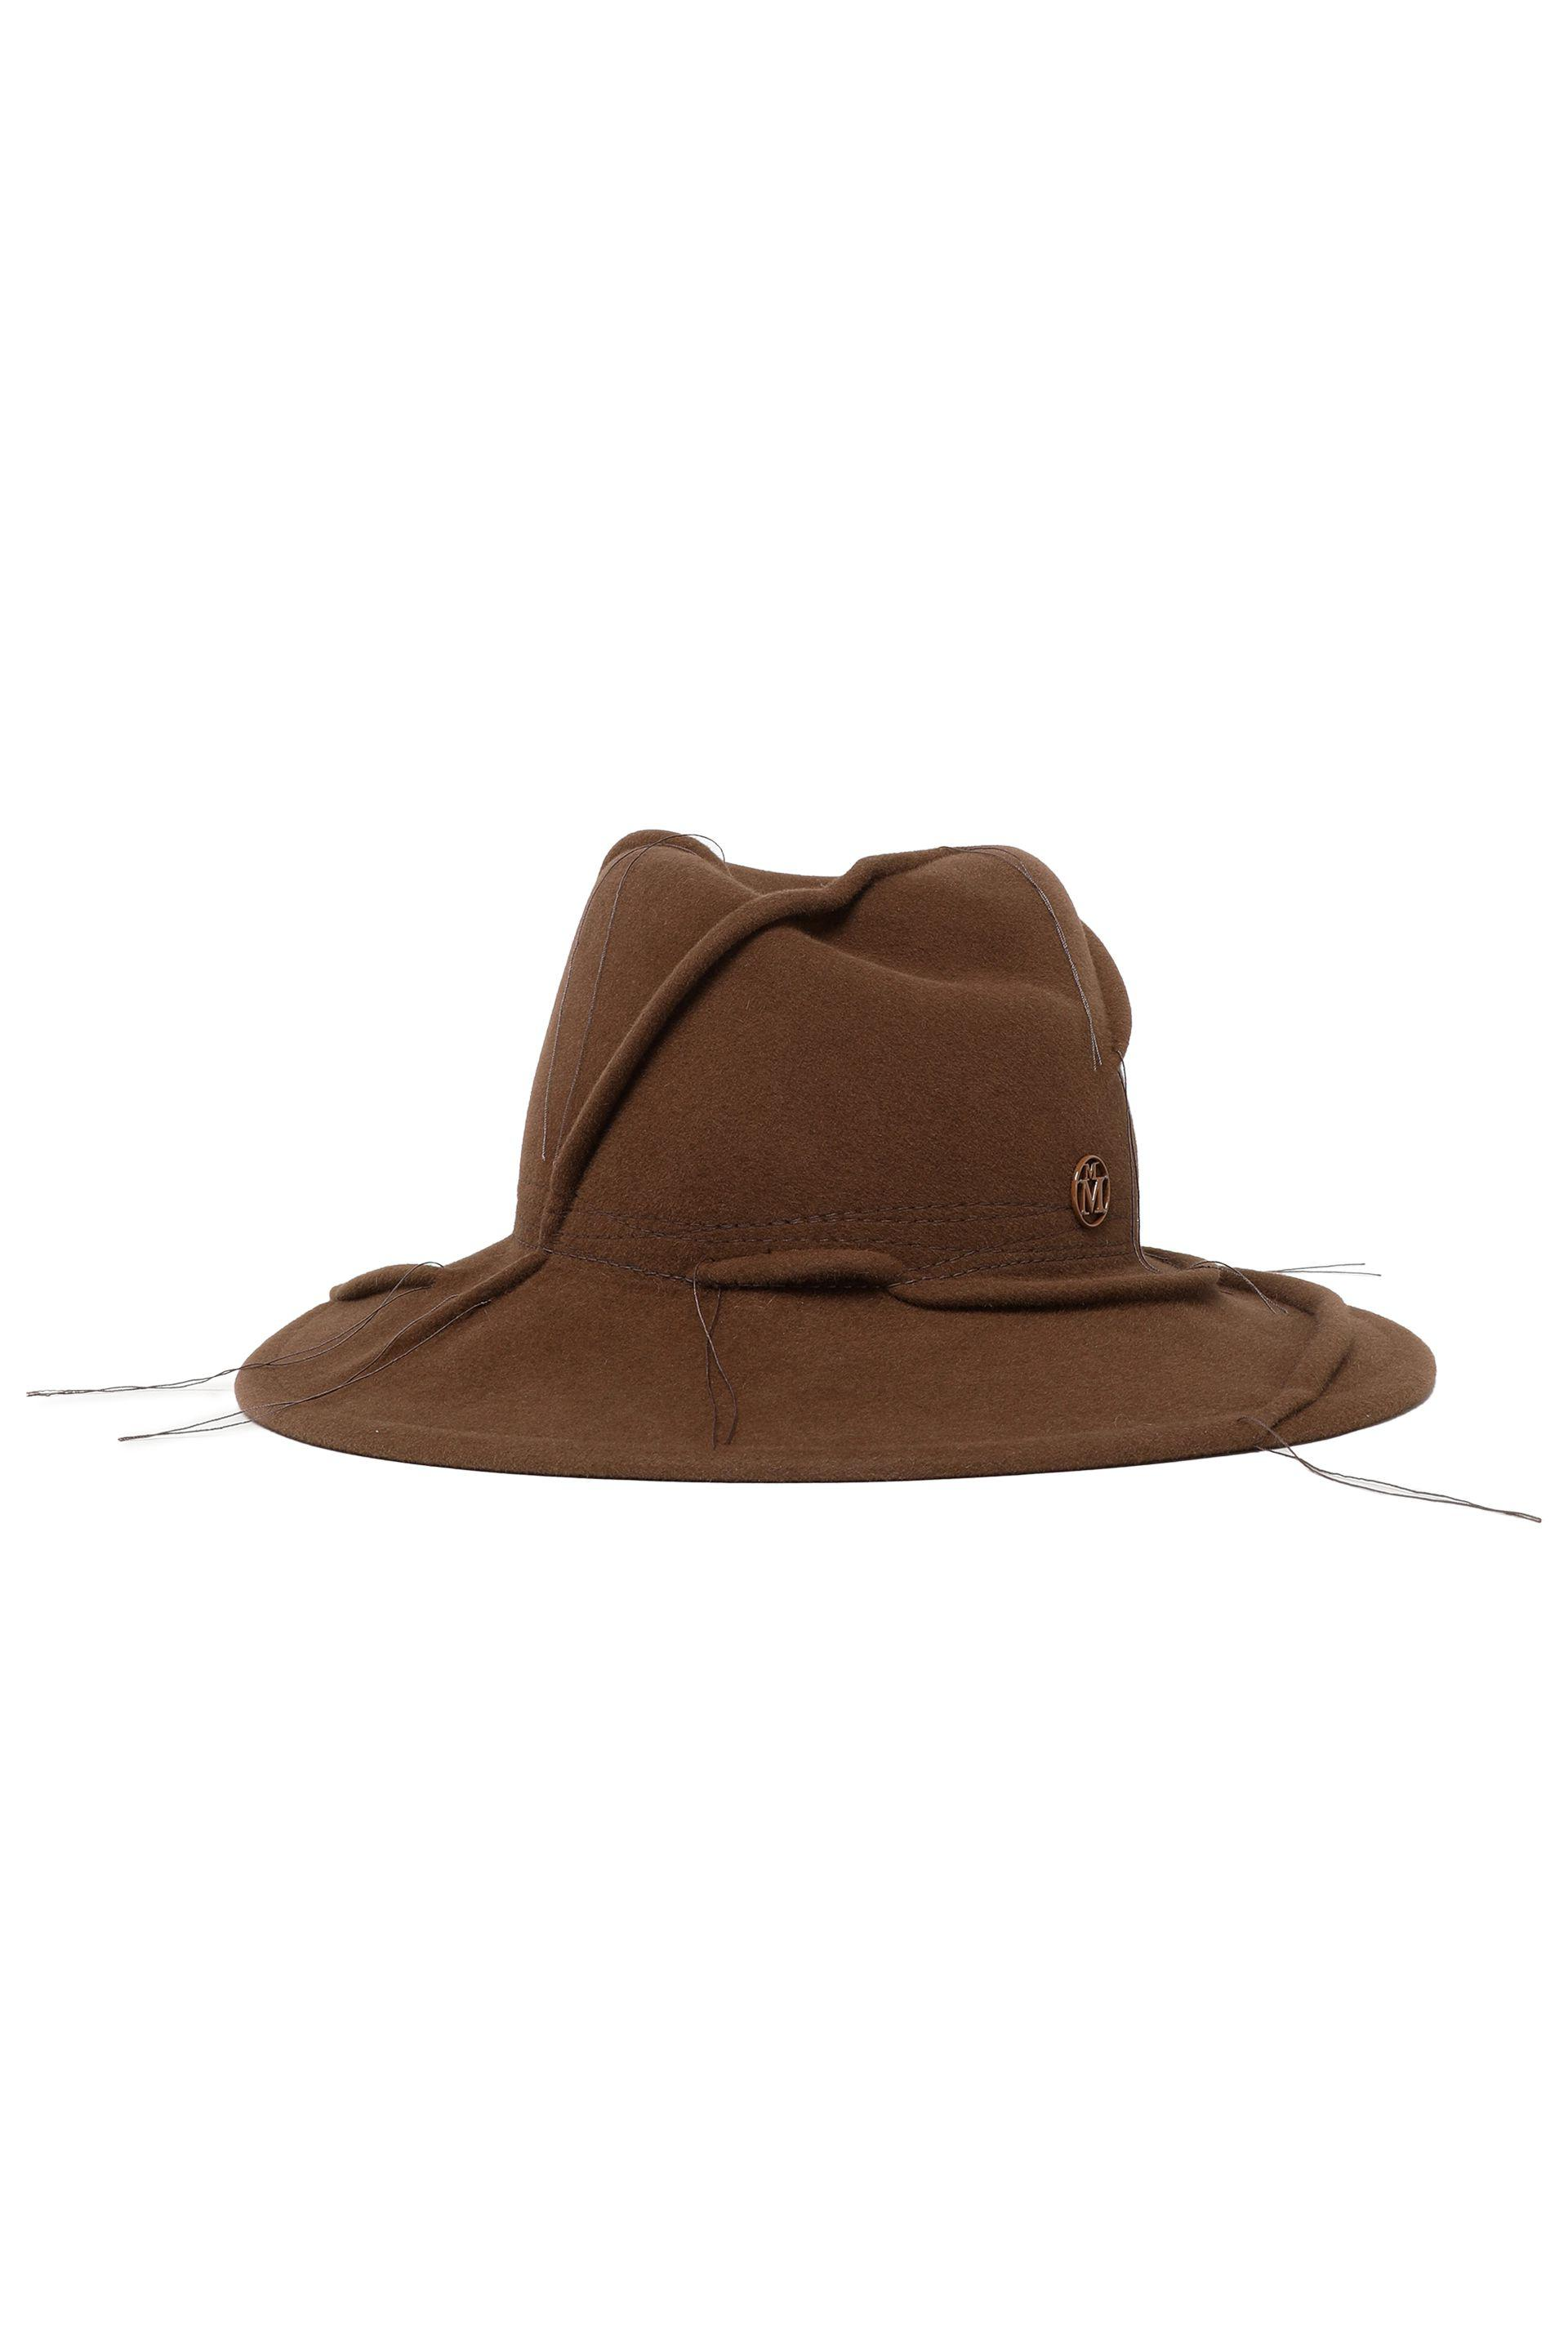 55883cf03a720 Maison Michel Felt Hat in Brown - Lyst